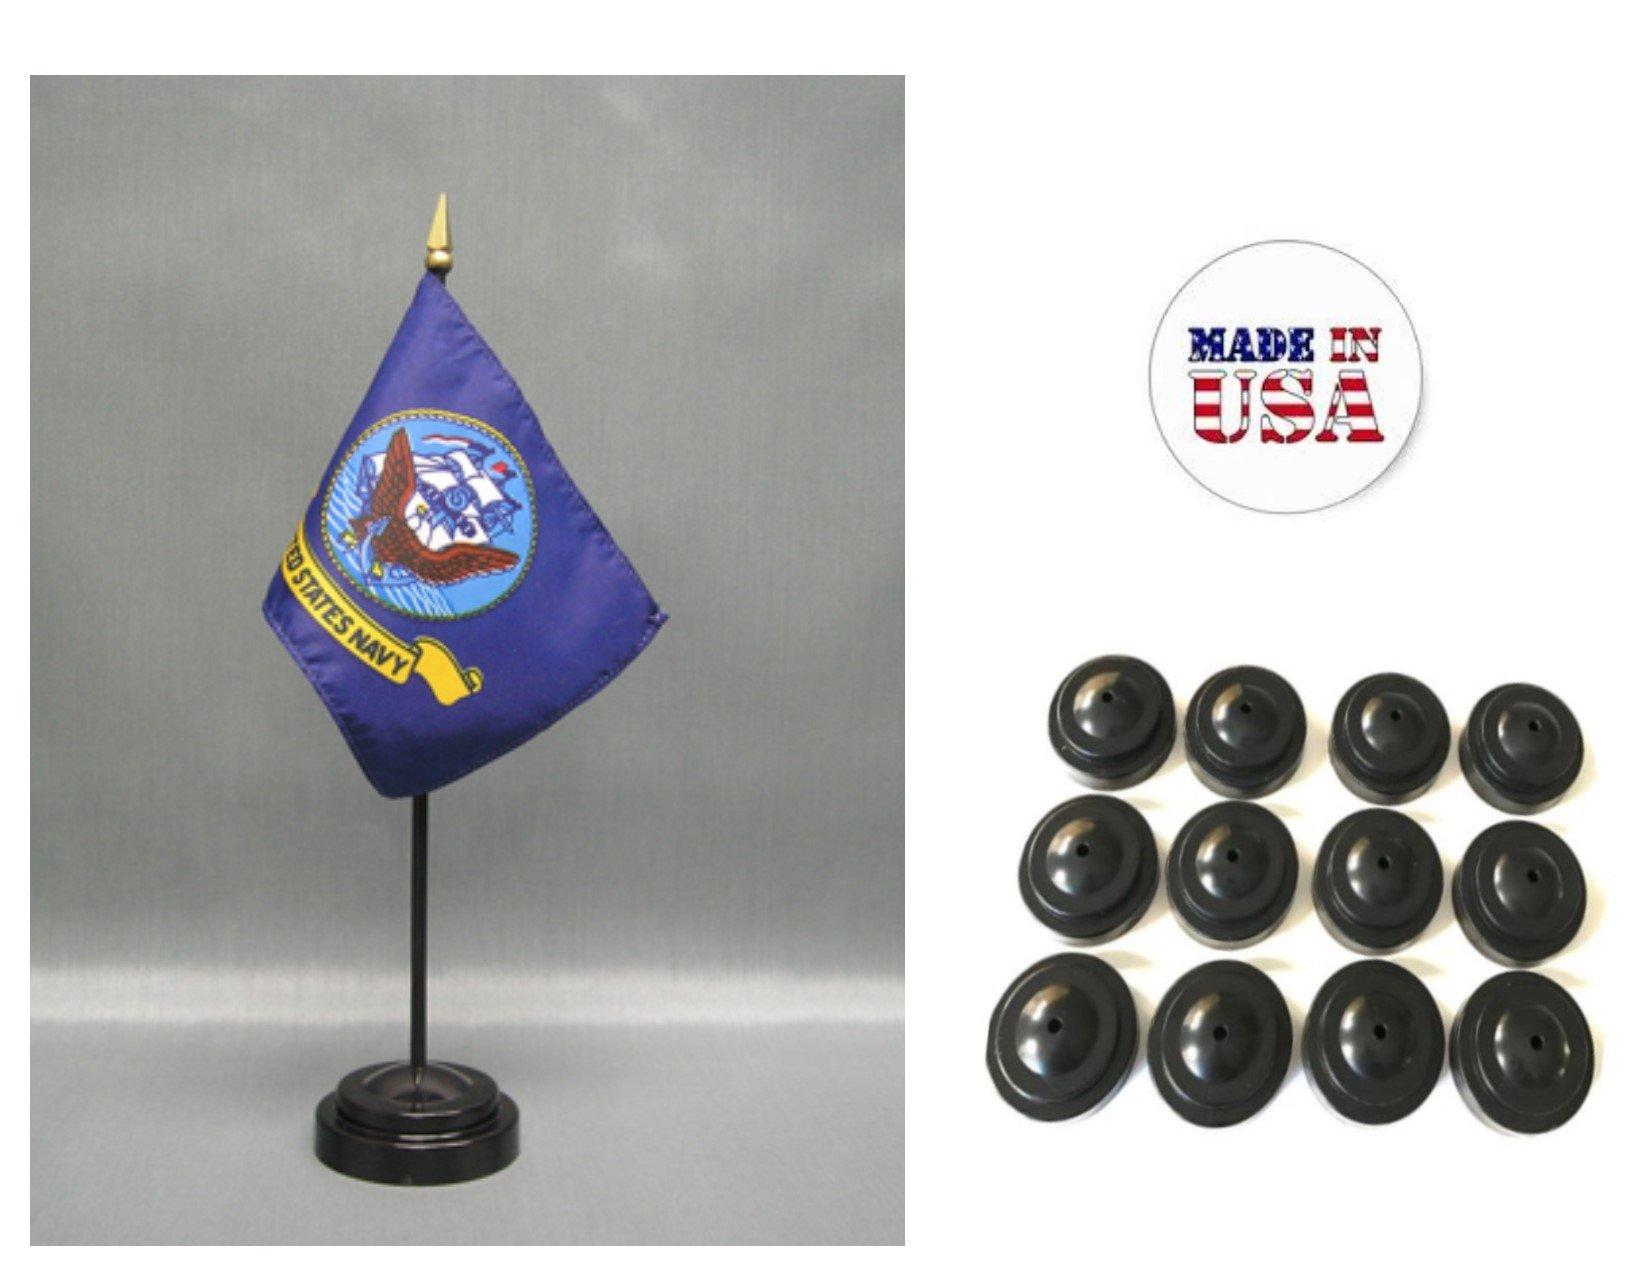 MADE IN USA!! Box of 12 United States Navy 4''x6'' Miniature Desk & Table Flags Includes 12 Flag Stands & 12 American Made Small Mini Naval Stick Flags